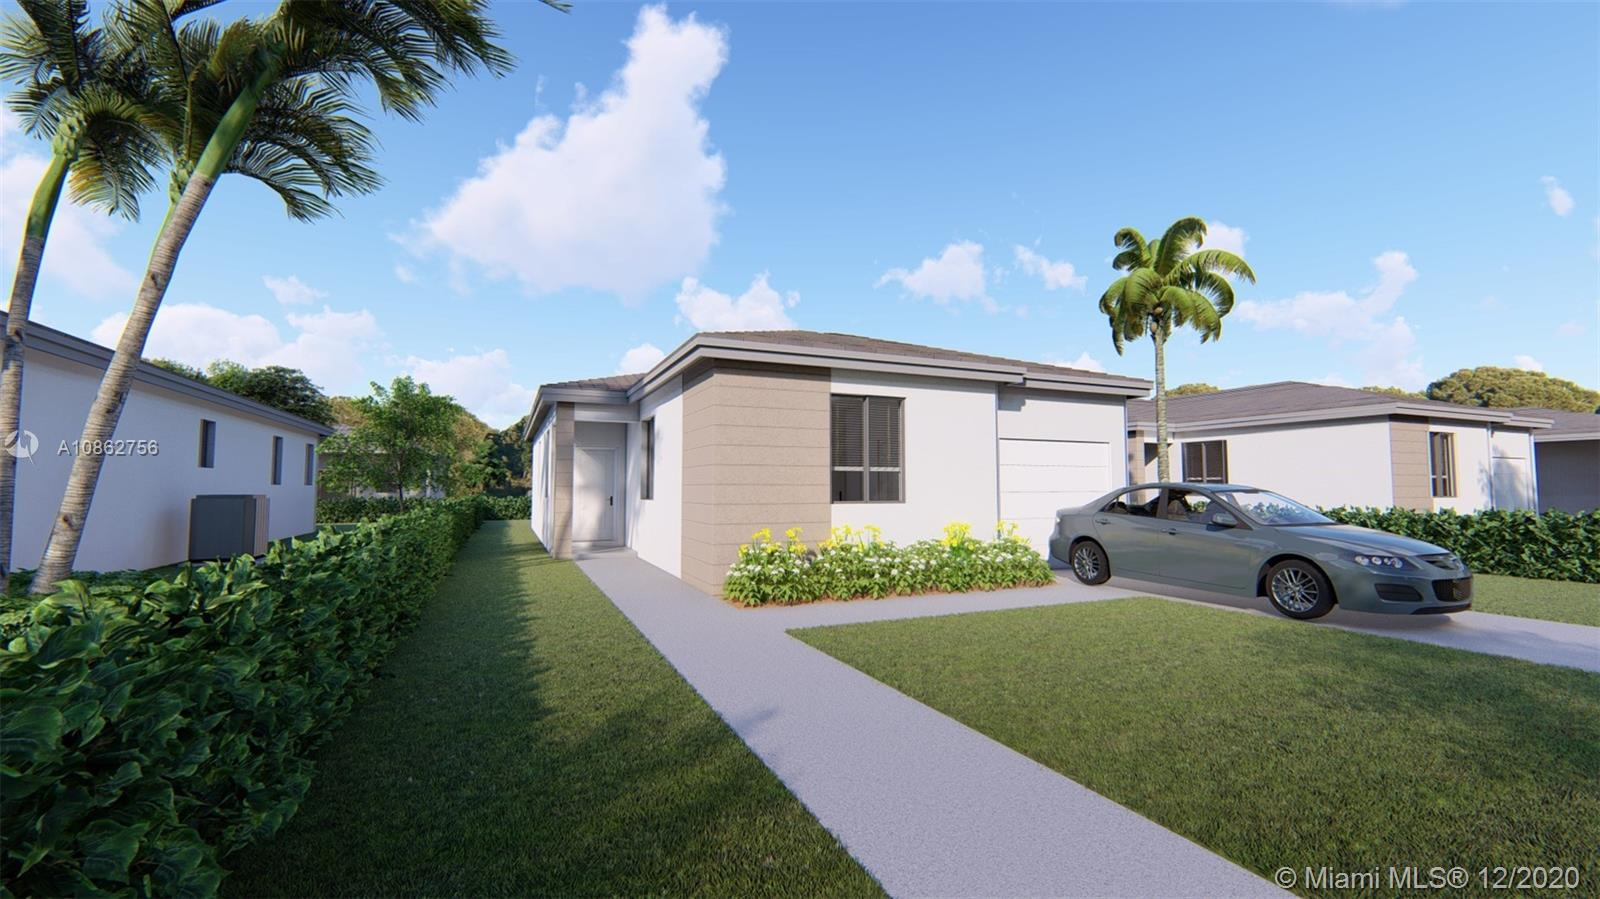 1536 NW 4th St  For Sale A10862756, FL